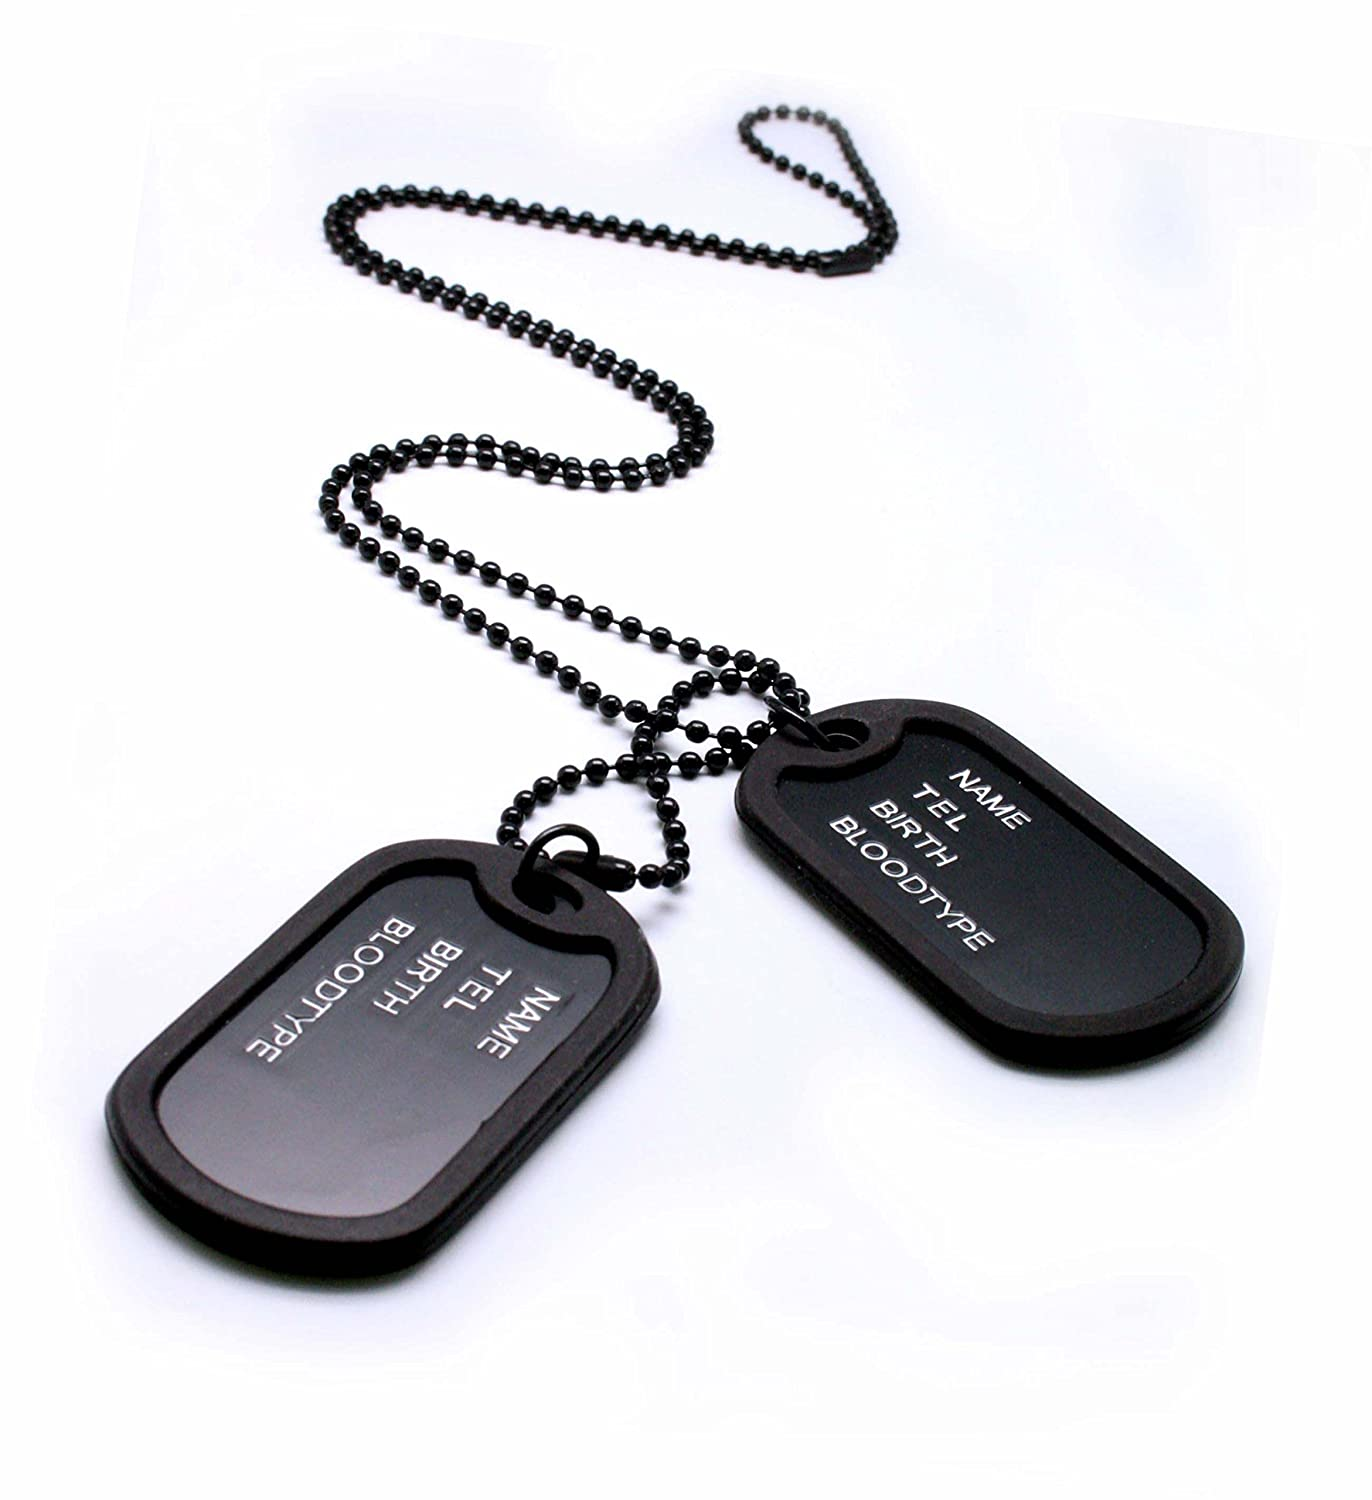 dog from cool plain couple stainless new tag necklaces brand steel army necklace pendant product wholesale pair silver quality high one diamond